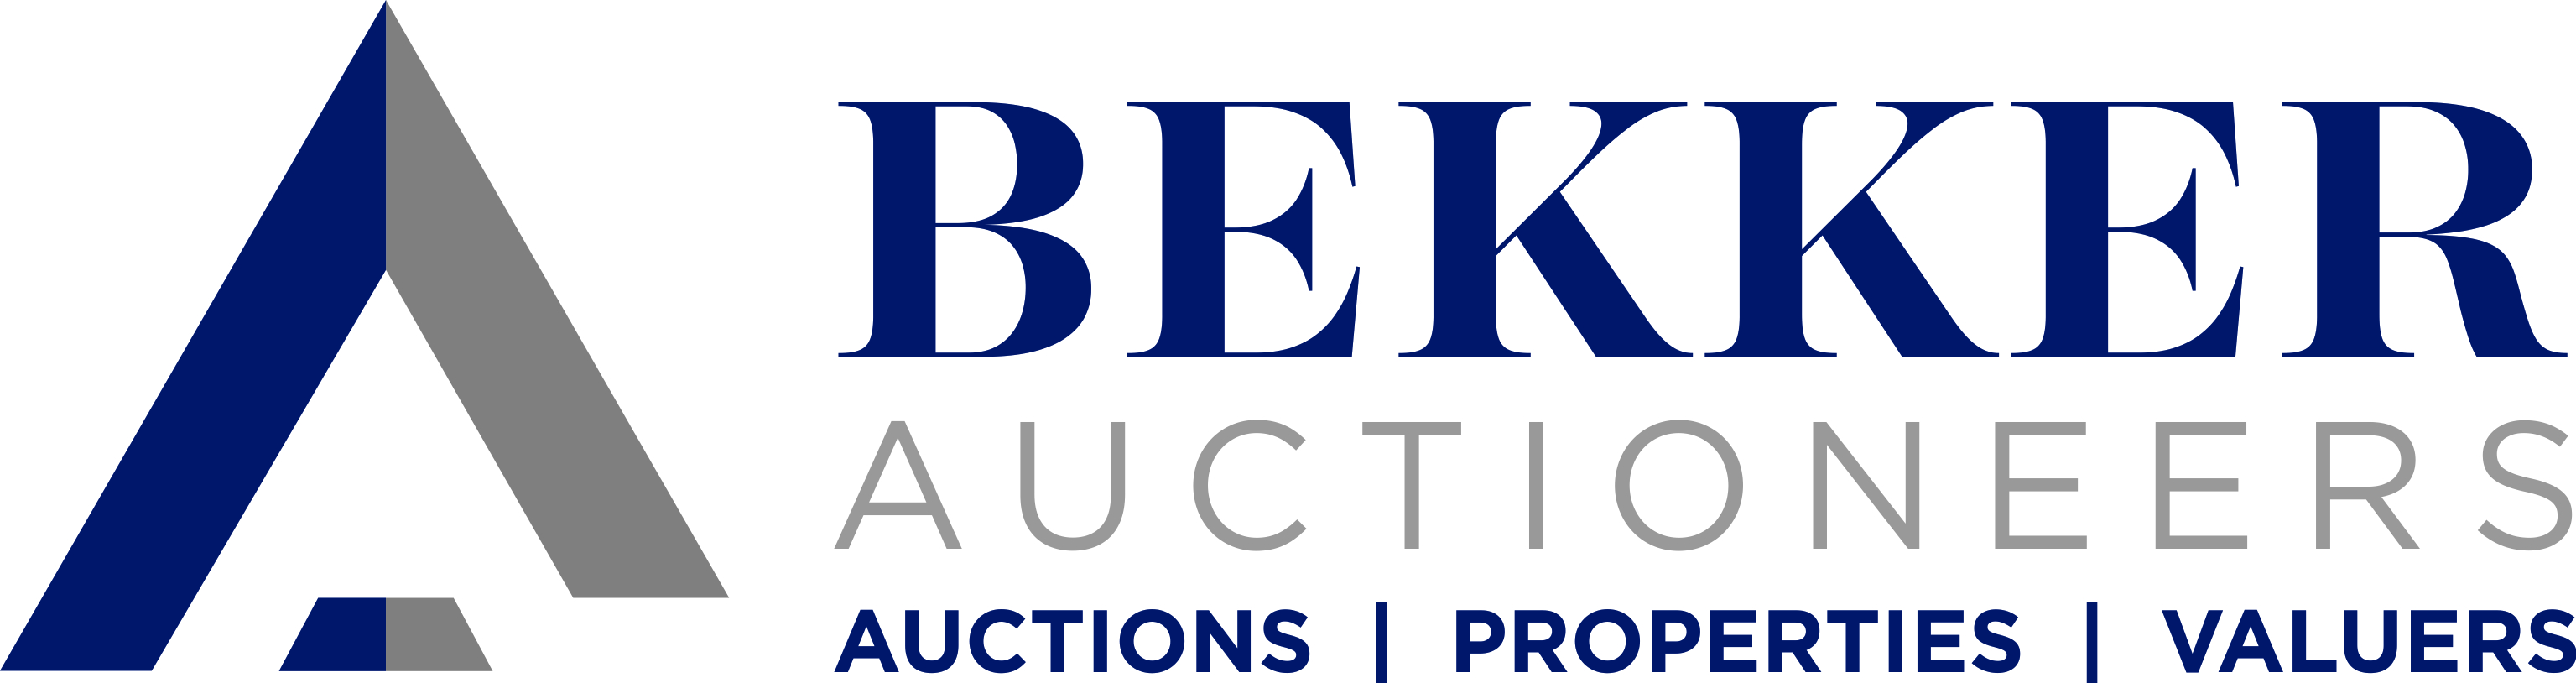 Bekker Group